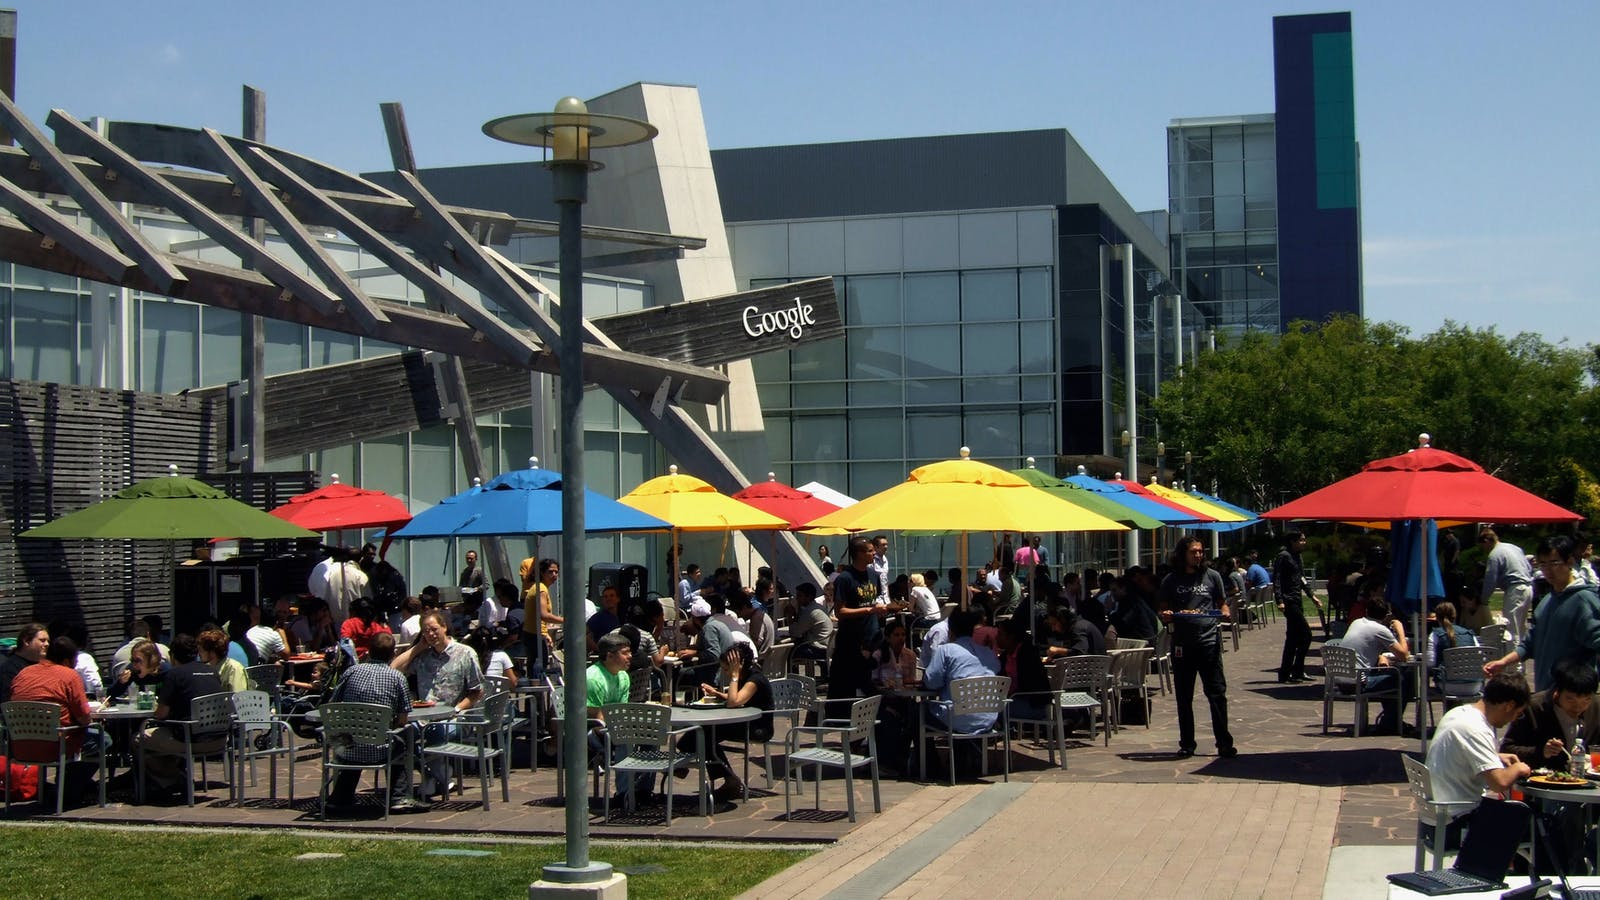 Google's campus. Photo by Flickr/Fotinakis.